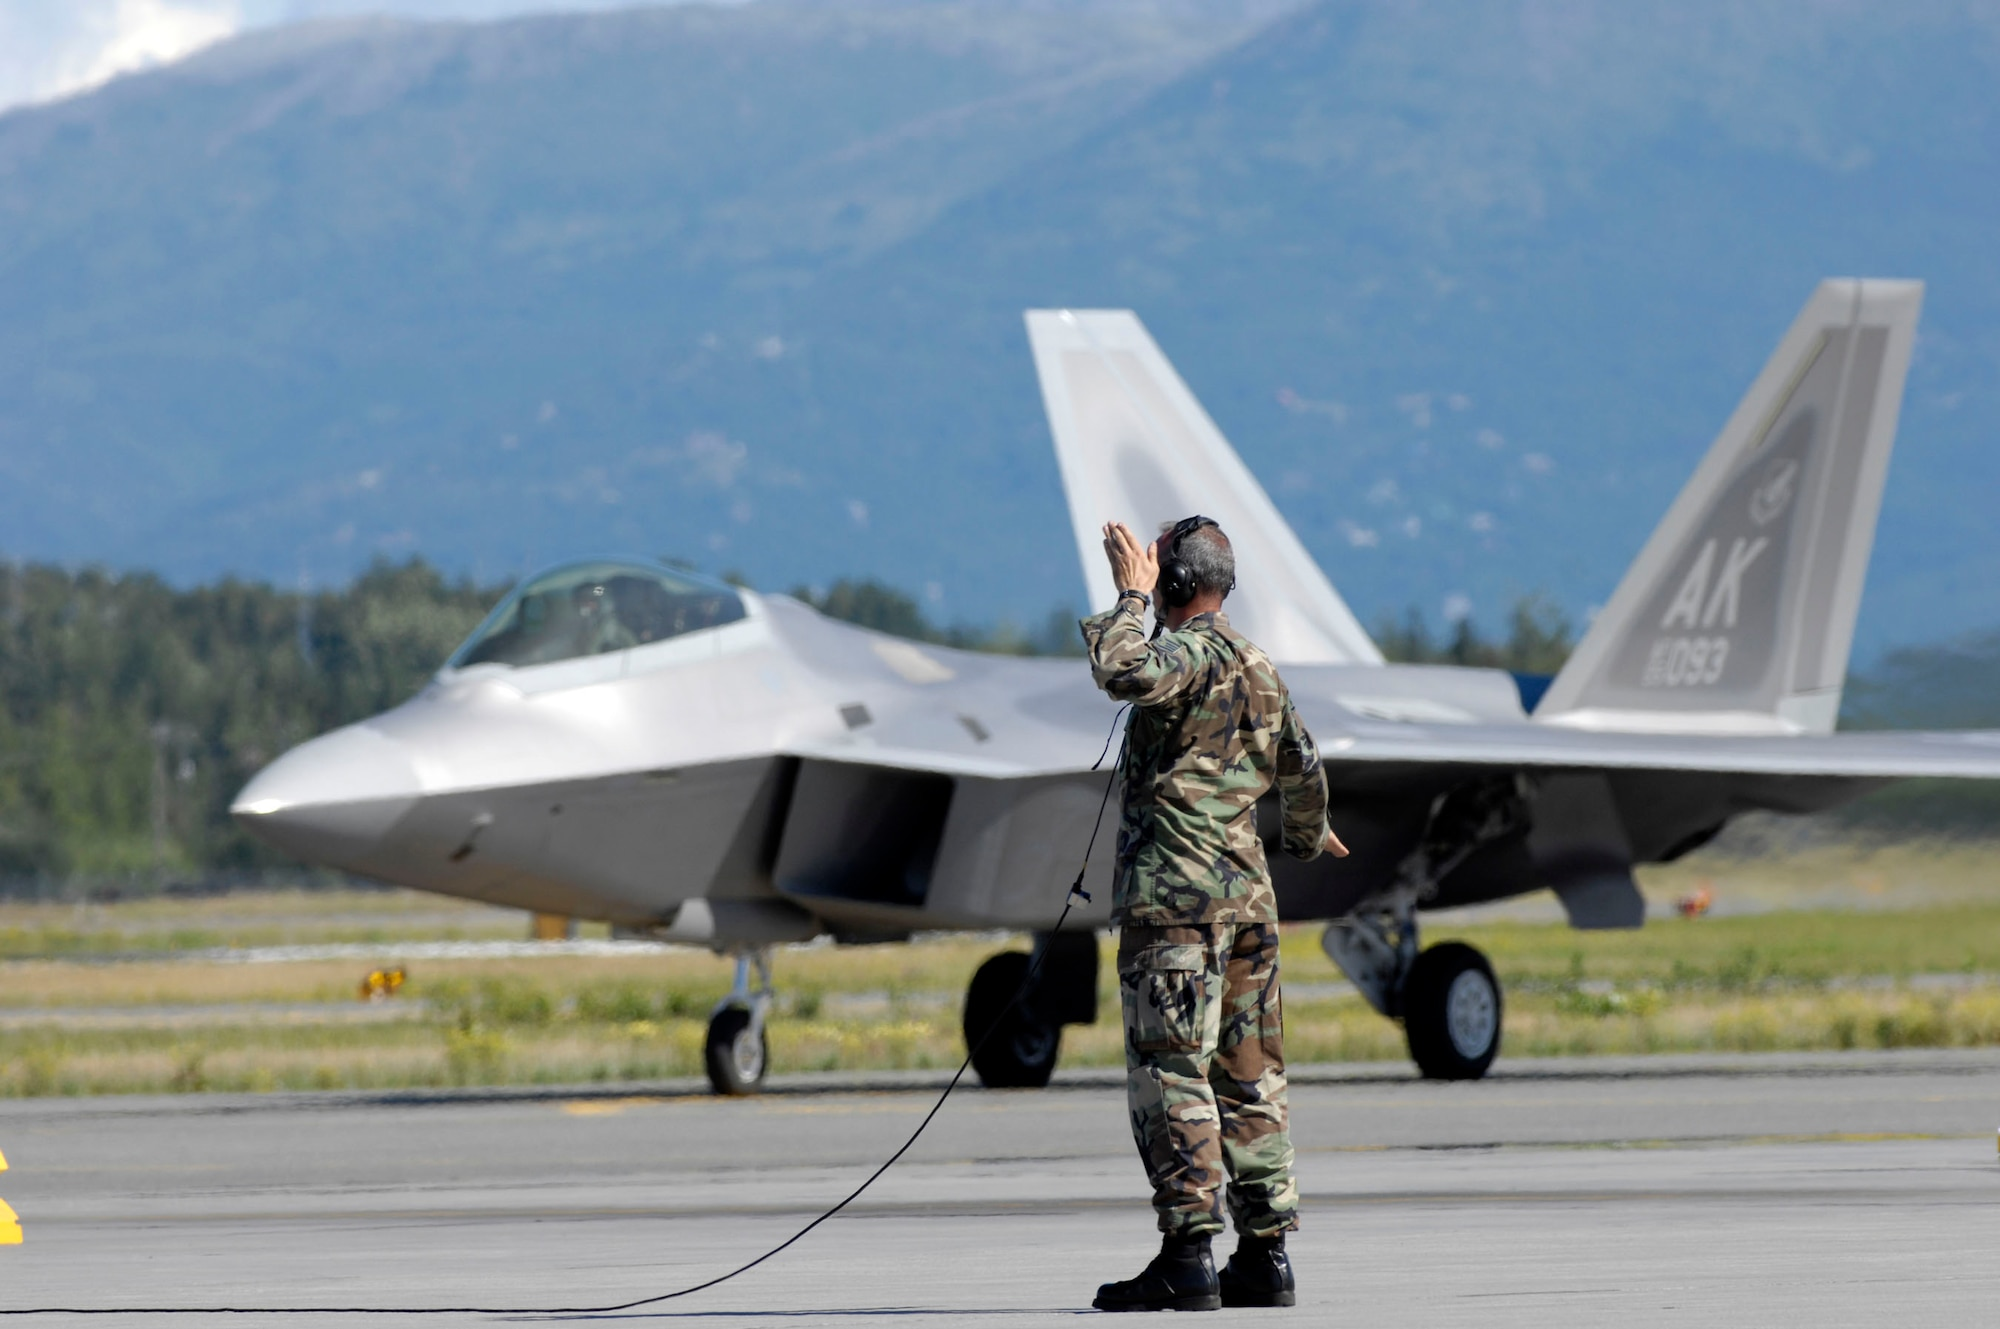 A crew chief marshals an F-22 Raptor into place at Elmendorf Air Force Base, Alaska, during a ceremony marking the aircraft's arrival Aug. 8. Six F-22s took part in the ceremony, with the base scheduled to receive 34 additional aircraft. Elmendorf should have its full complement of 40 aircraft by December 2009. (U.S. Air Force photo/Tech. Sgt. Keith Brown)